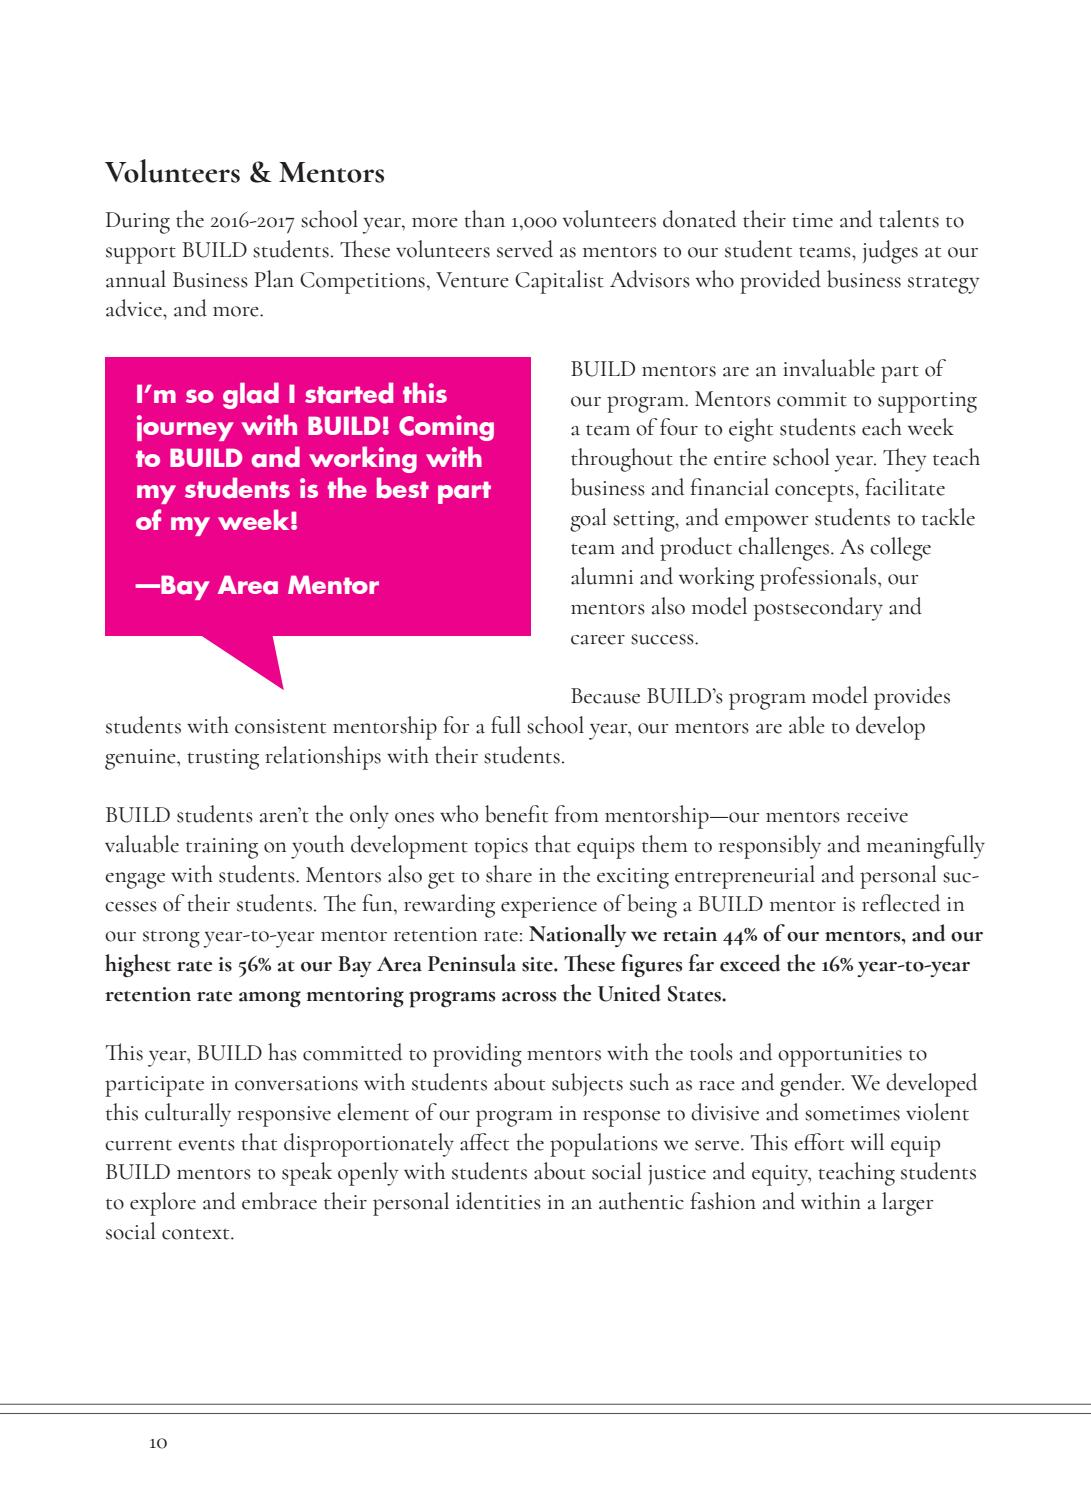 BUILD org Annual Report 2016-2017 by BUILD org - issuu